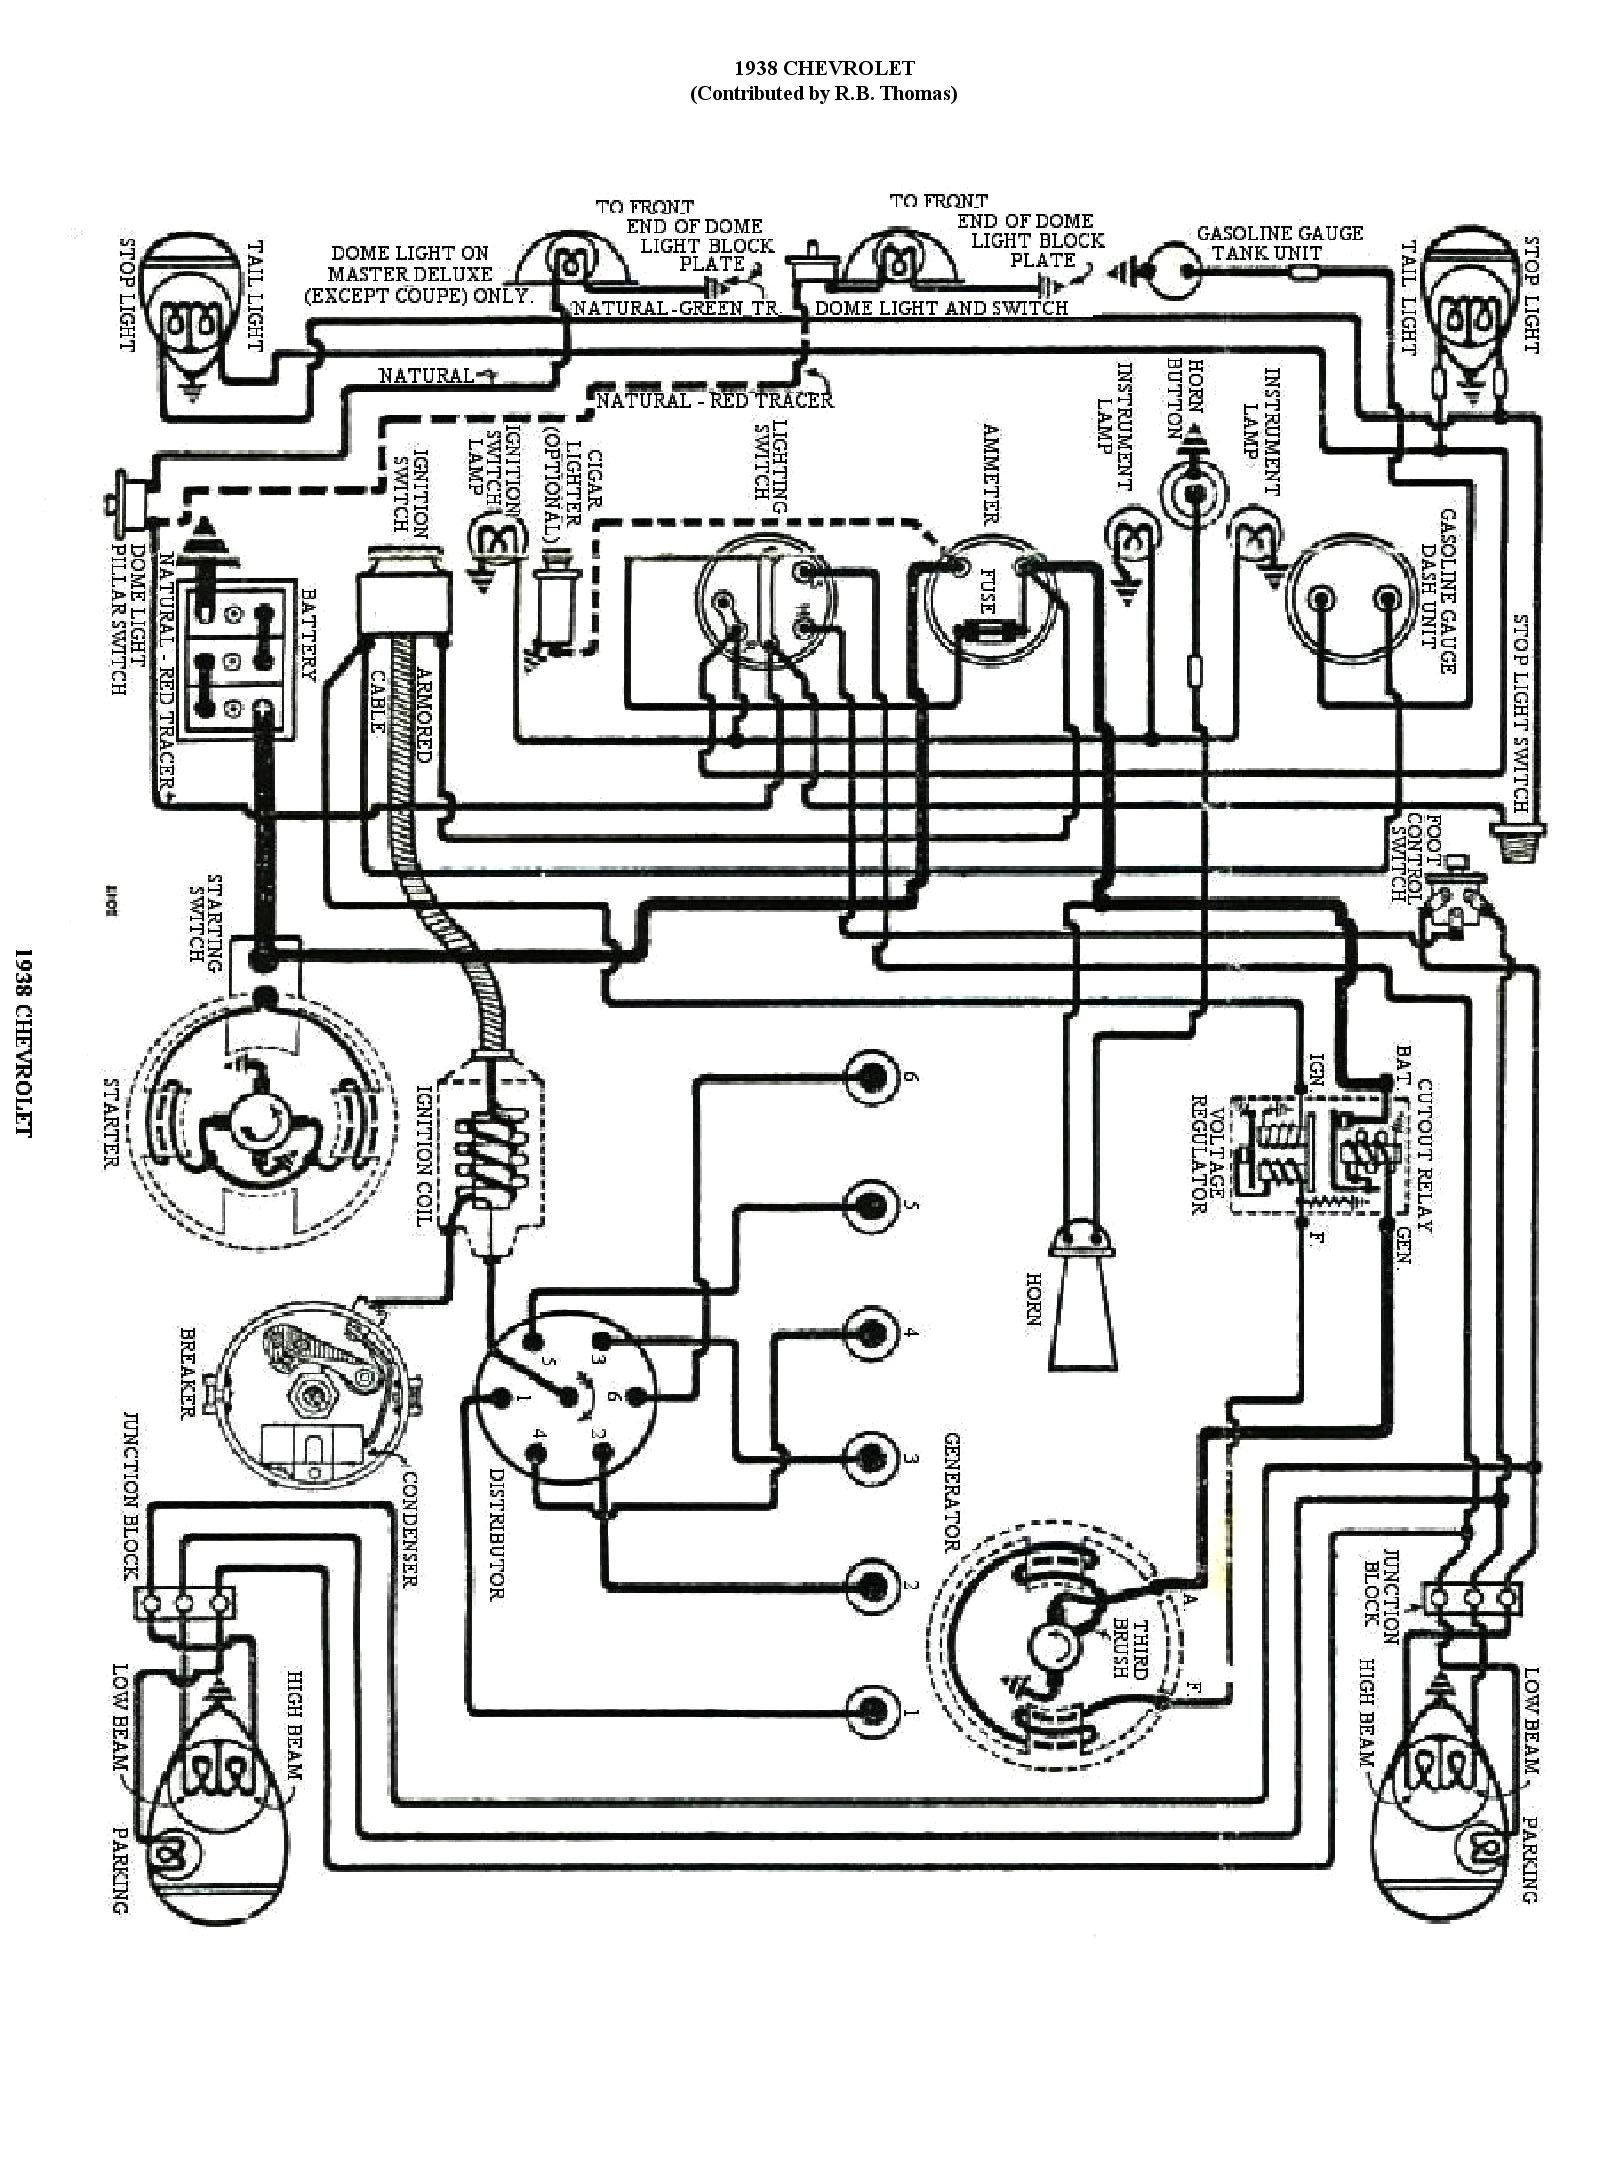 1974 chevy c20 350 ignition diagram wiring